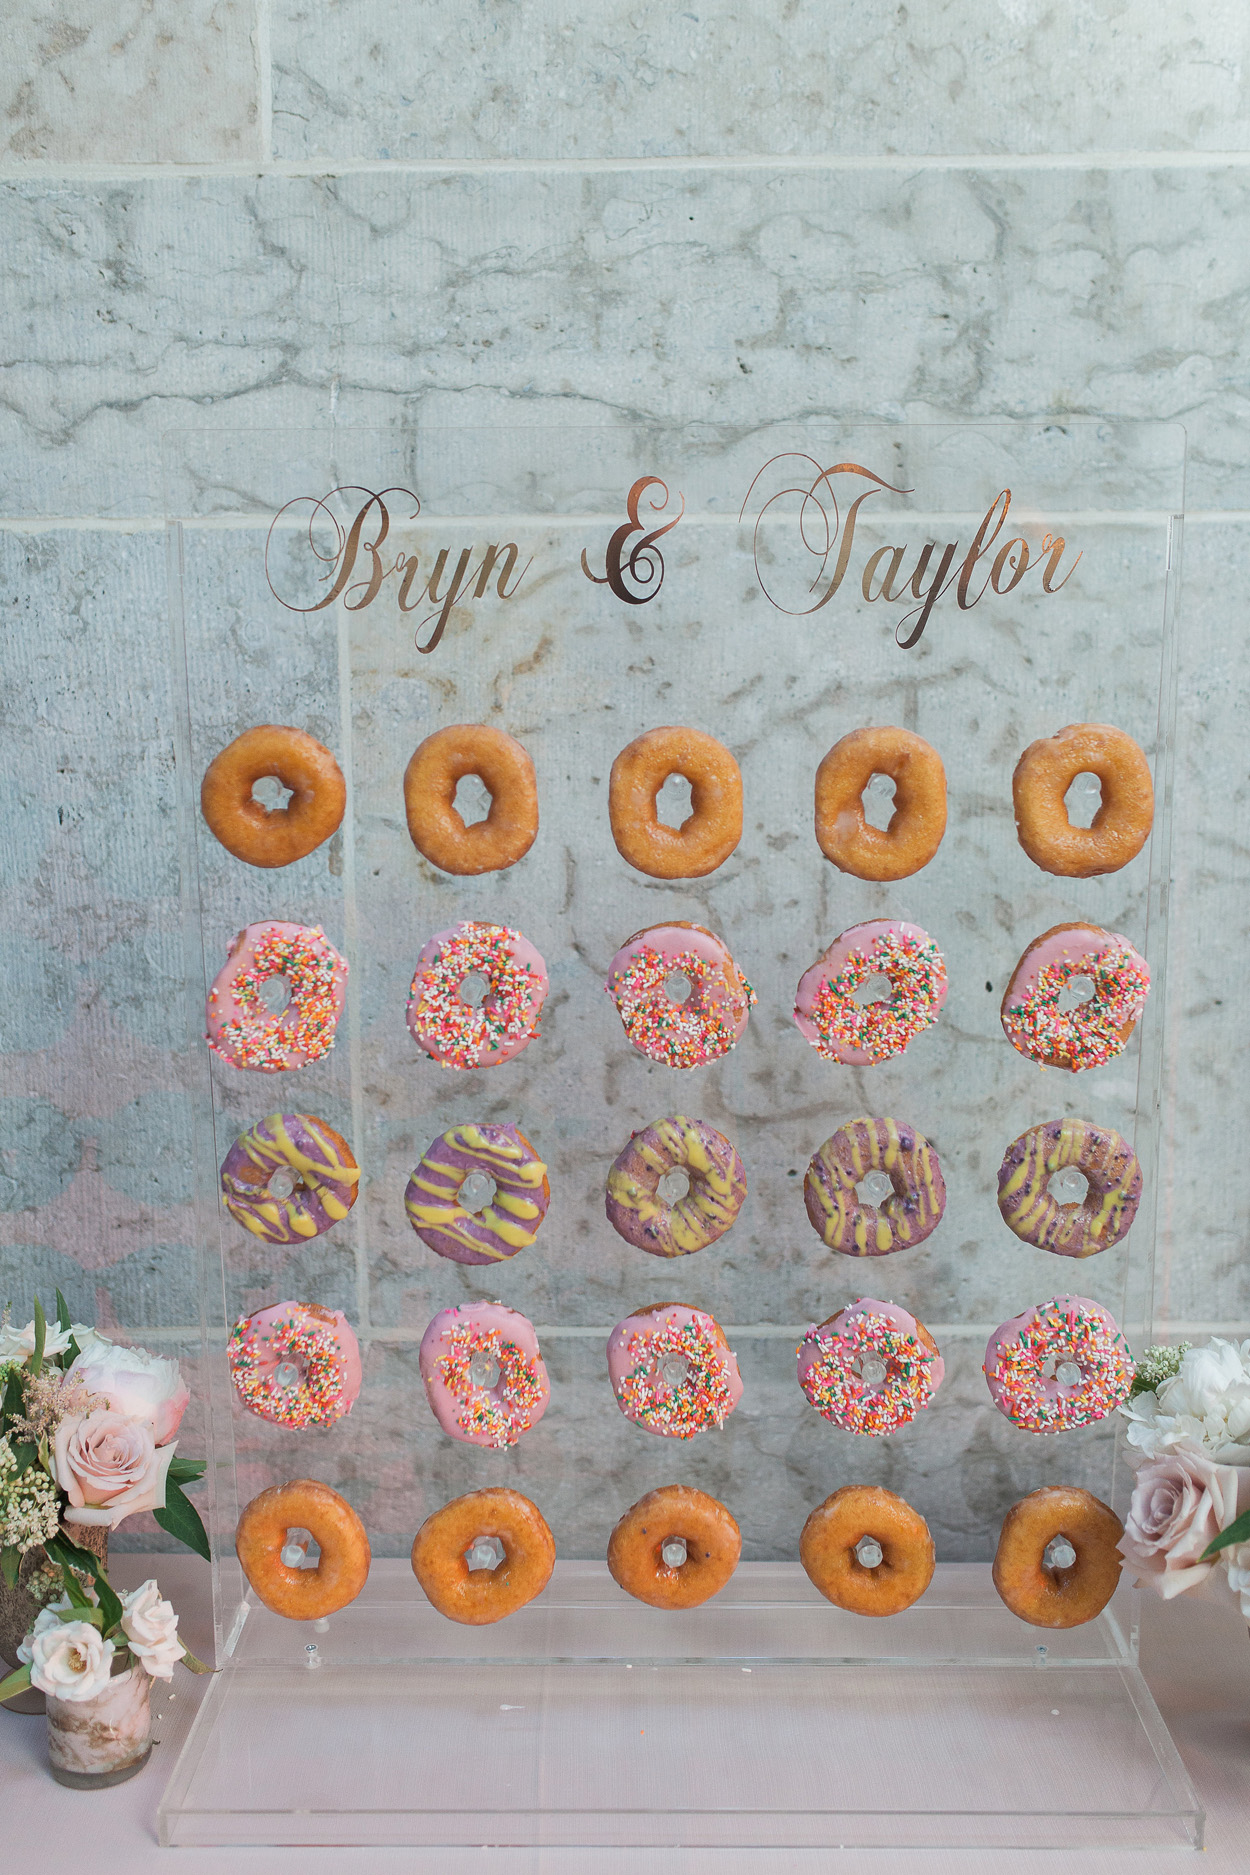 Detroit Lions nfl football player Taylor Decker wedding reception doughnut donut acrylic stand display